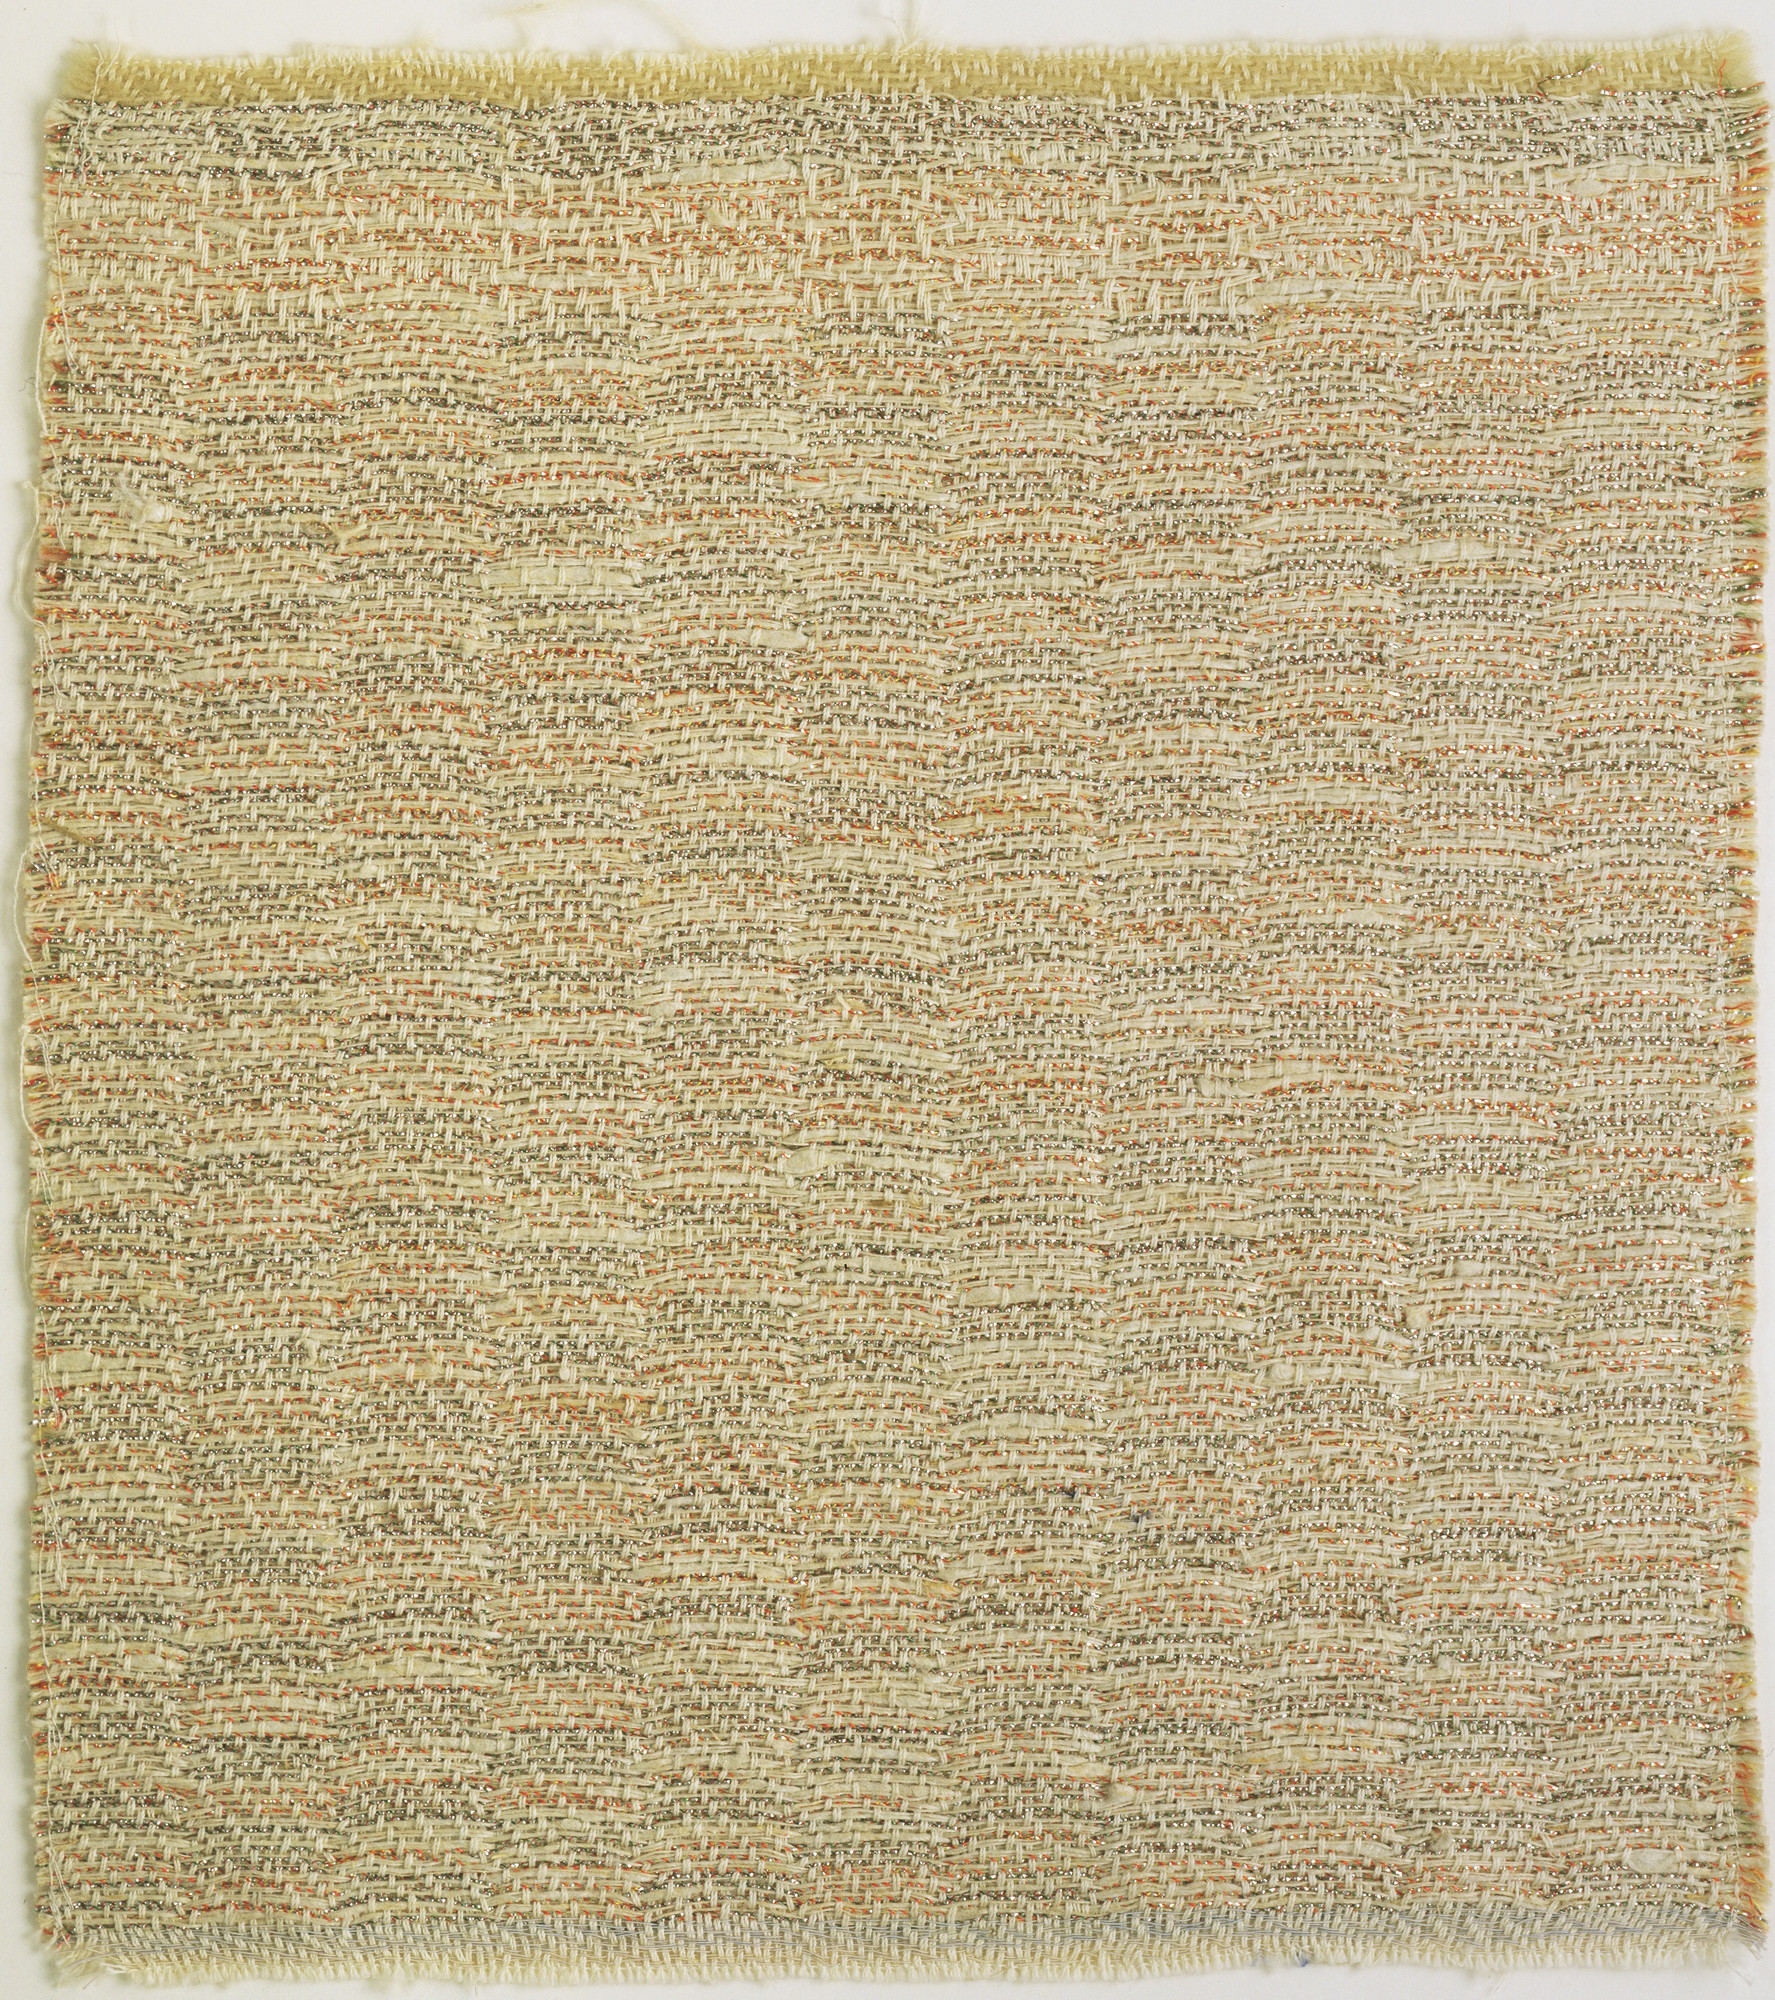 Anni Albers. Evening-Coat Material. 1946